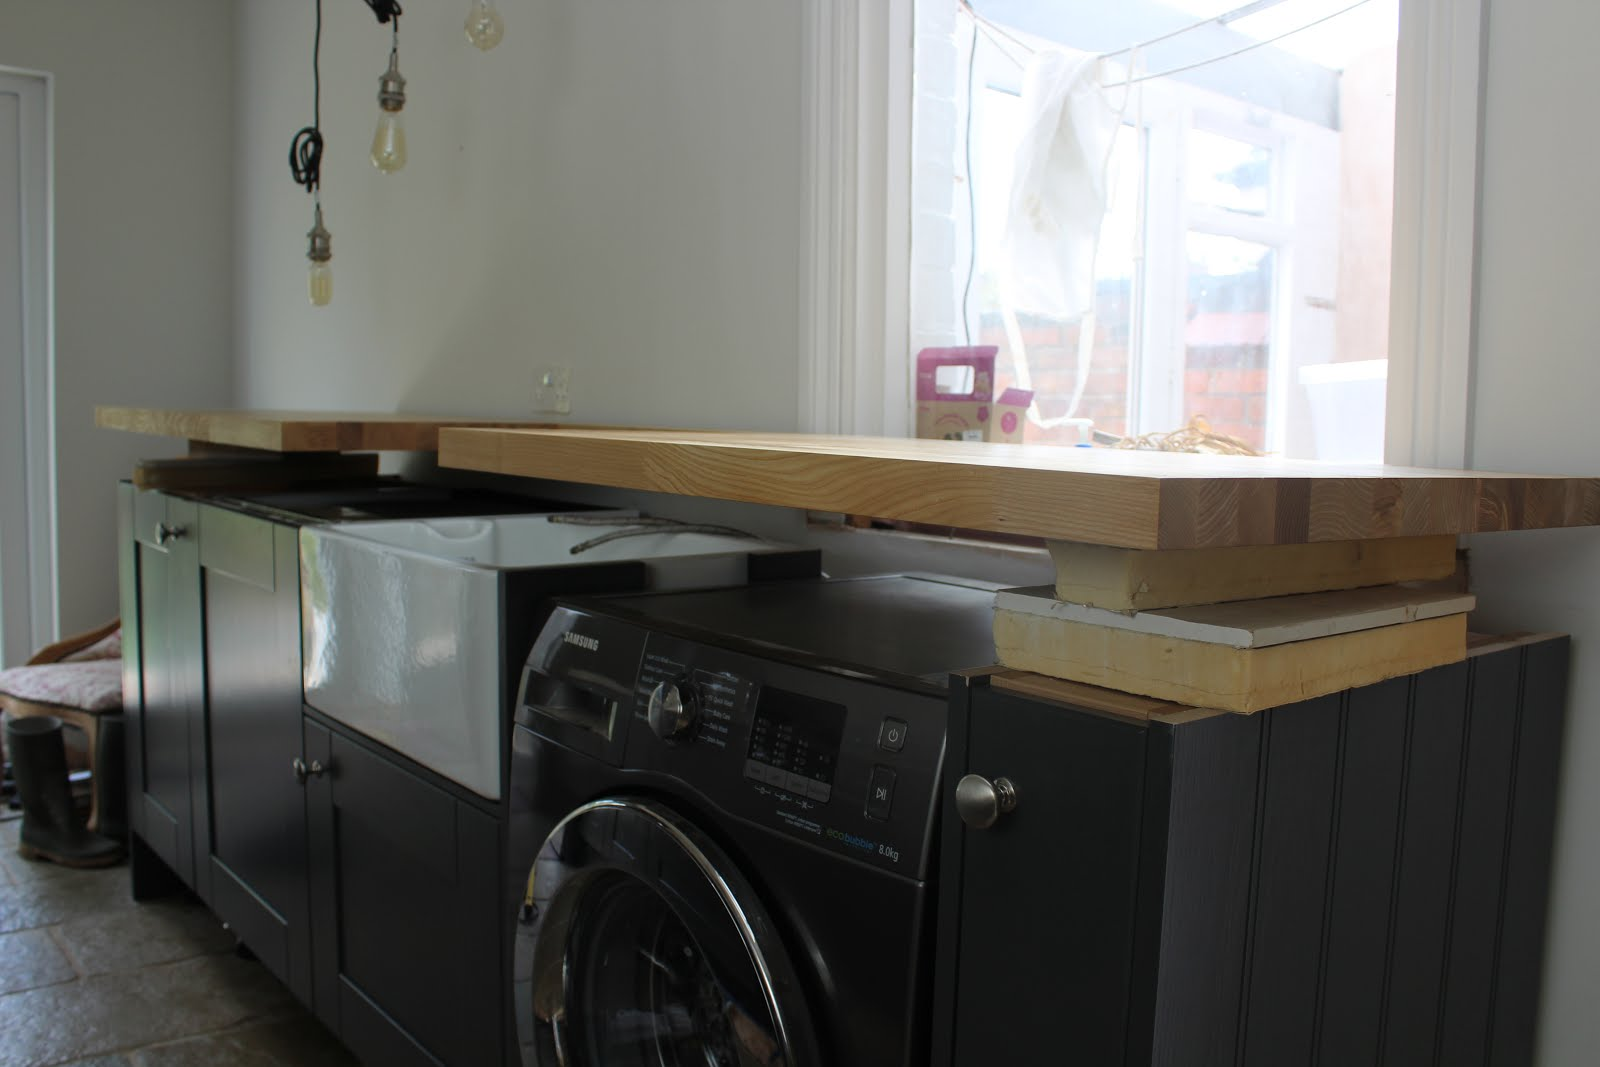 How to fit a wood worktop around belfast sink